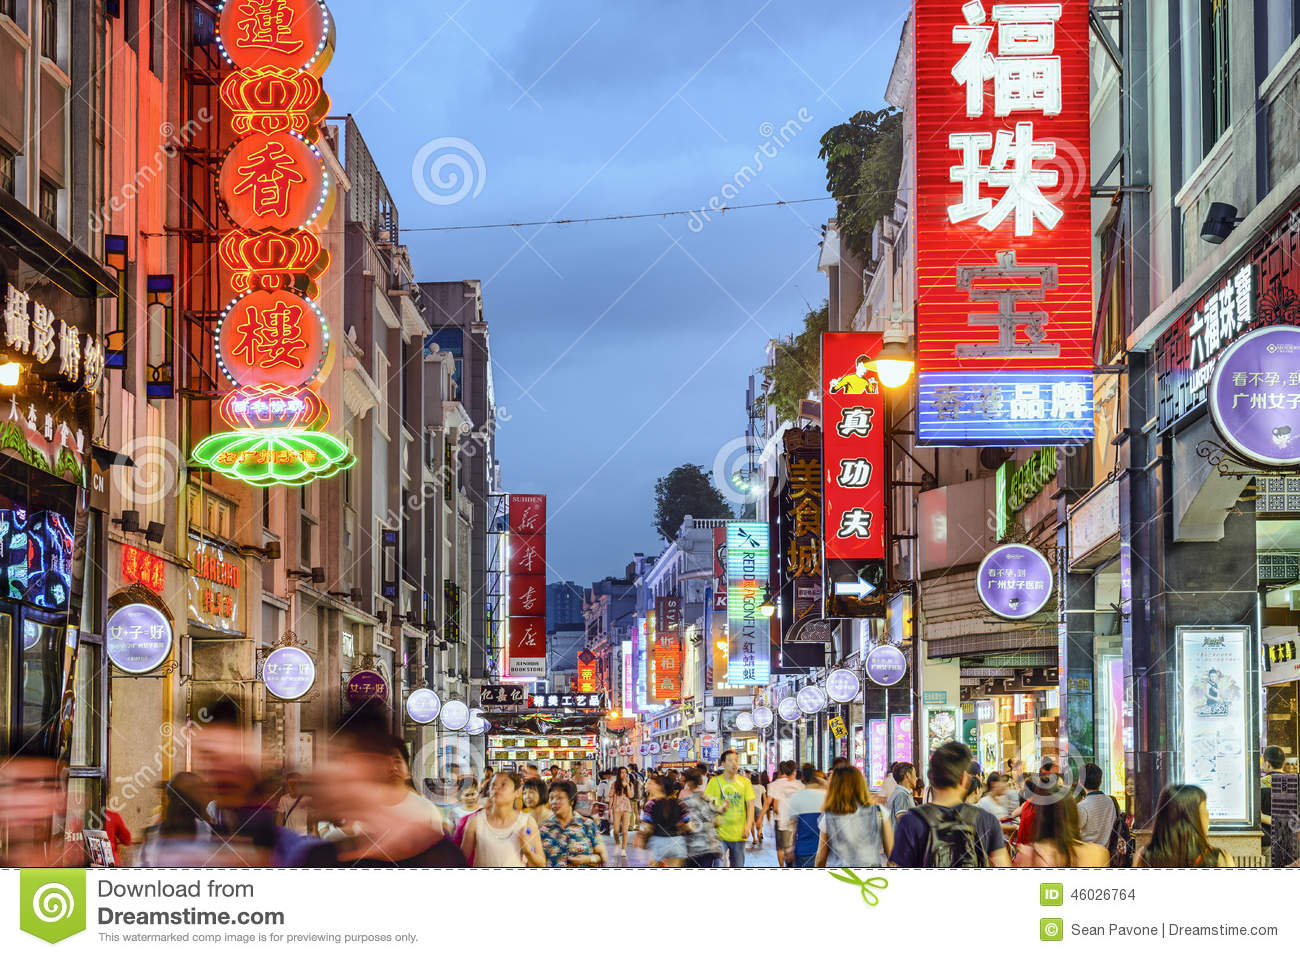 shopping chinese 1184k followers, 2,874 following, 5,664 posts - see instagram photos and videos from shopping china (@shoppingchinaimportados).